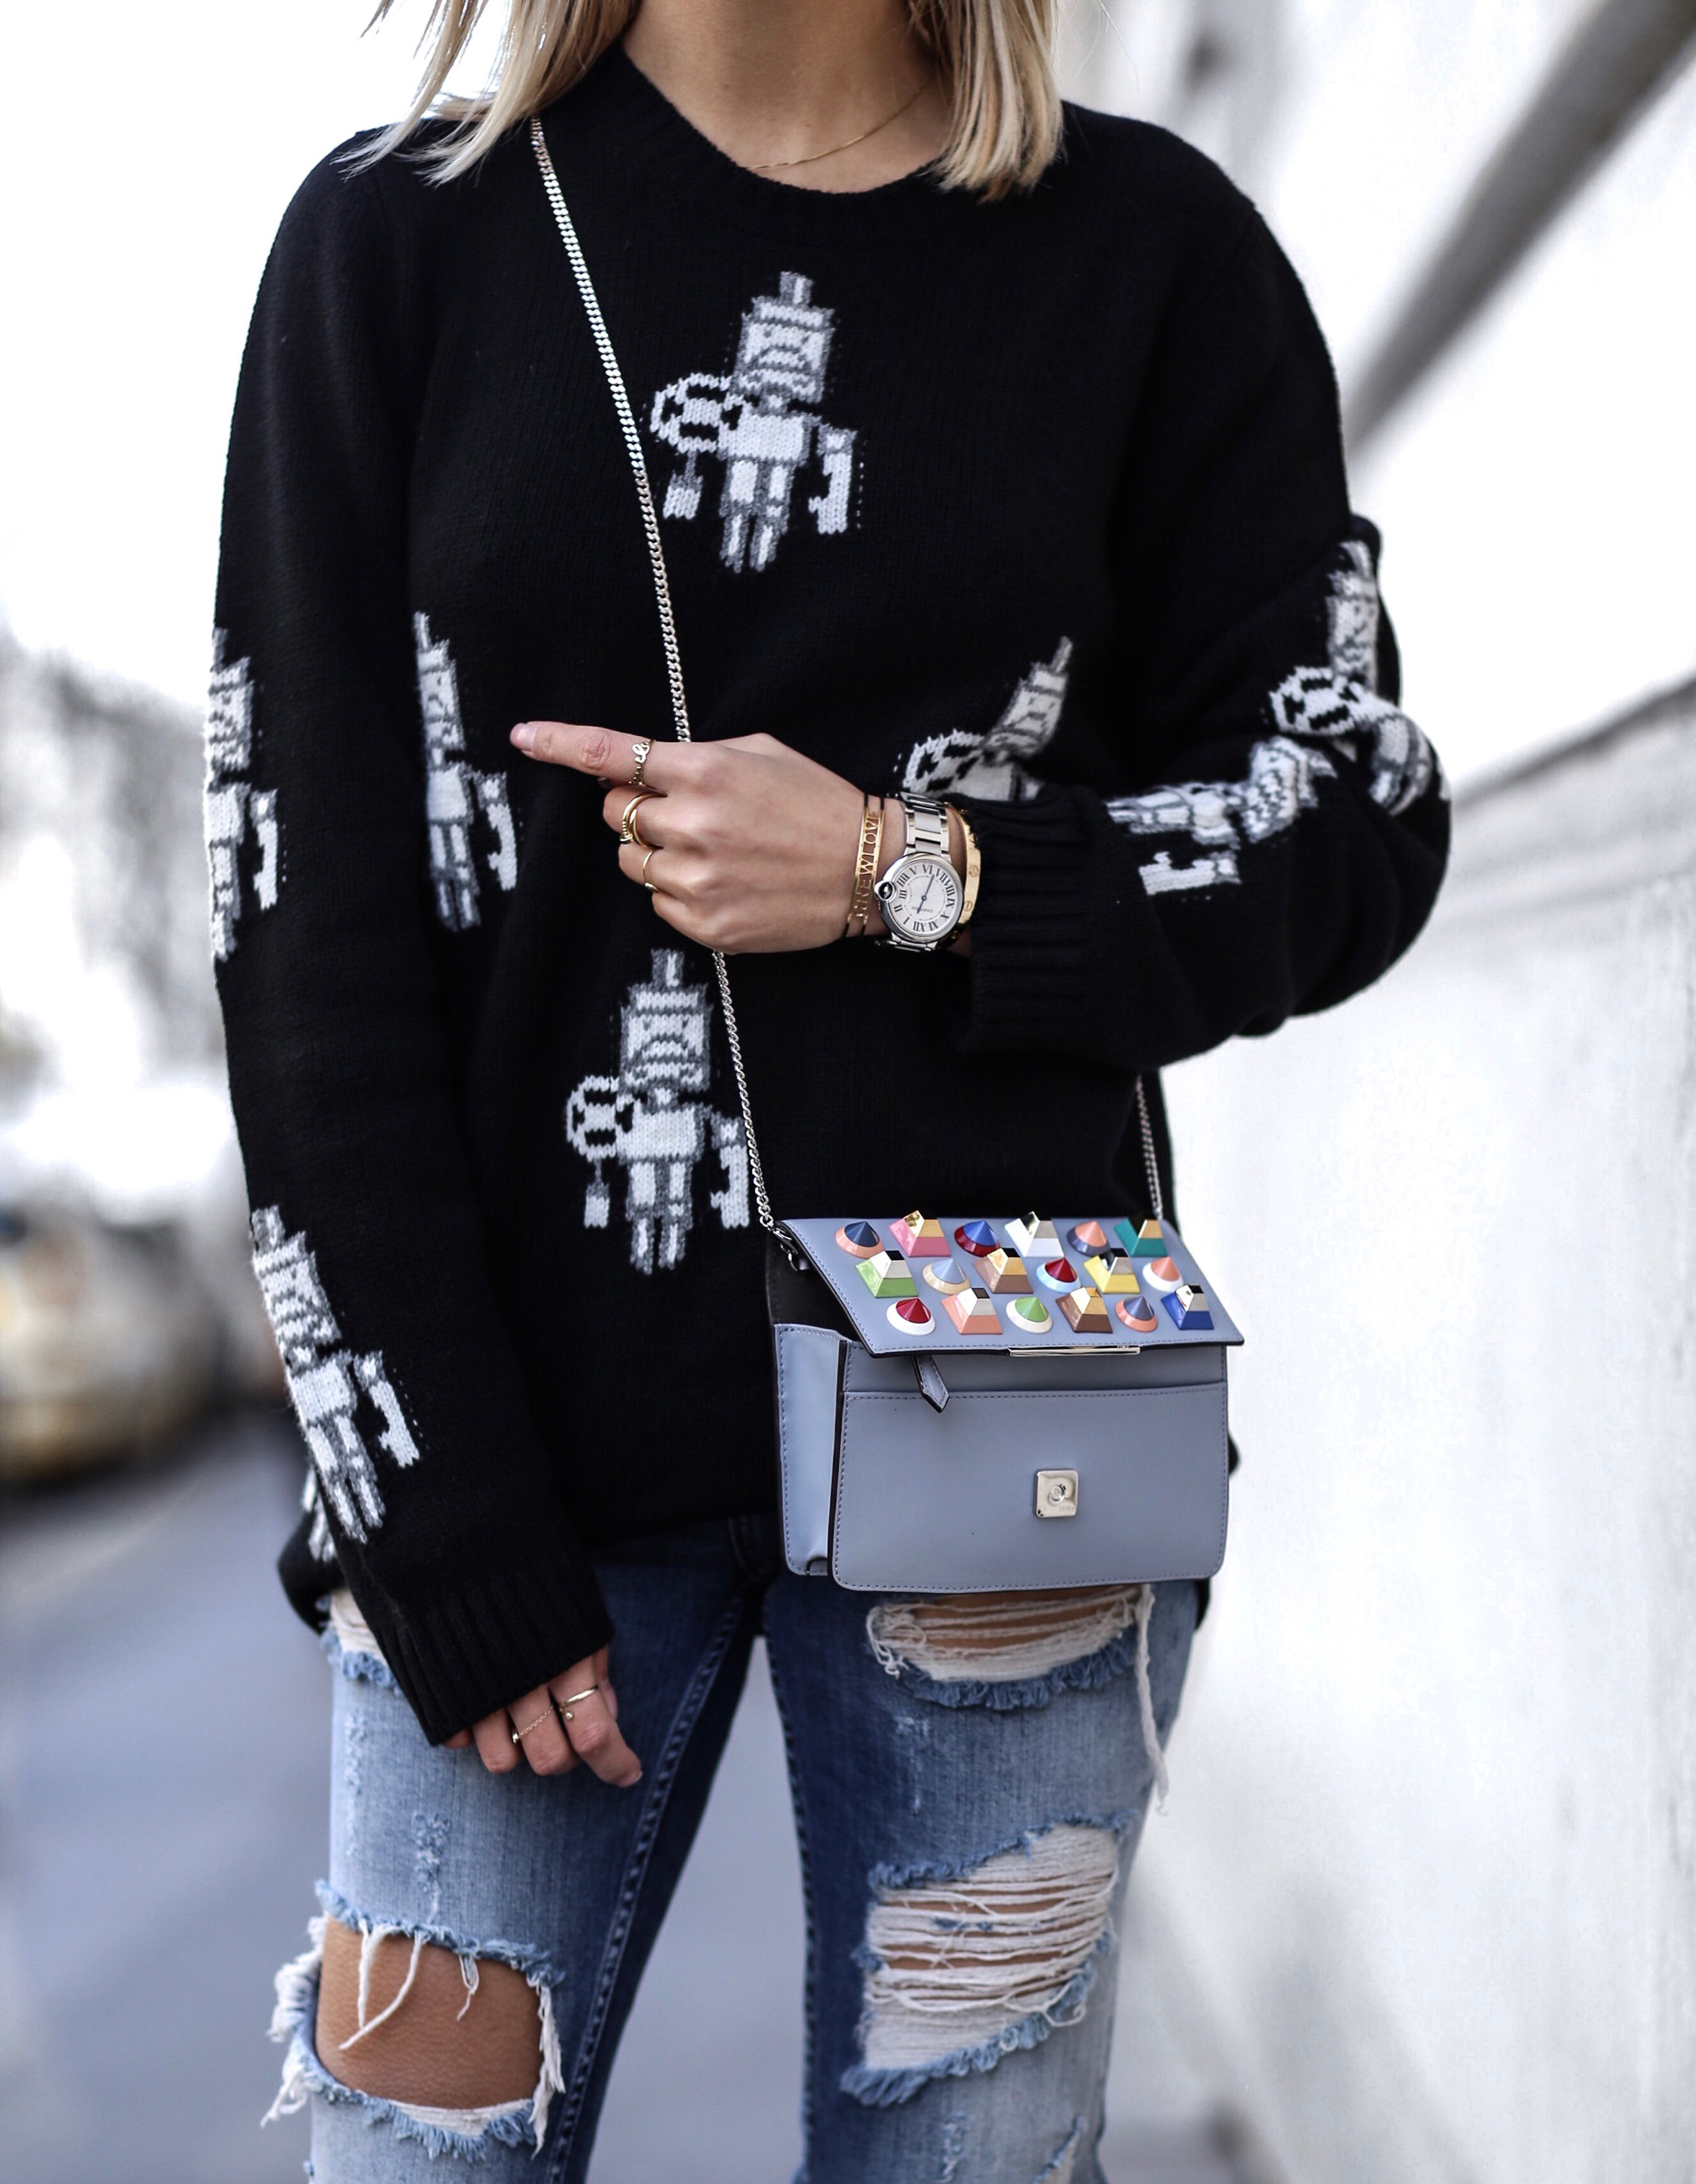 prada_robot_knit_fendi_bag